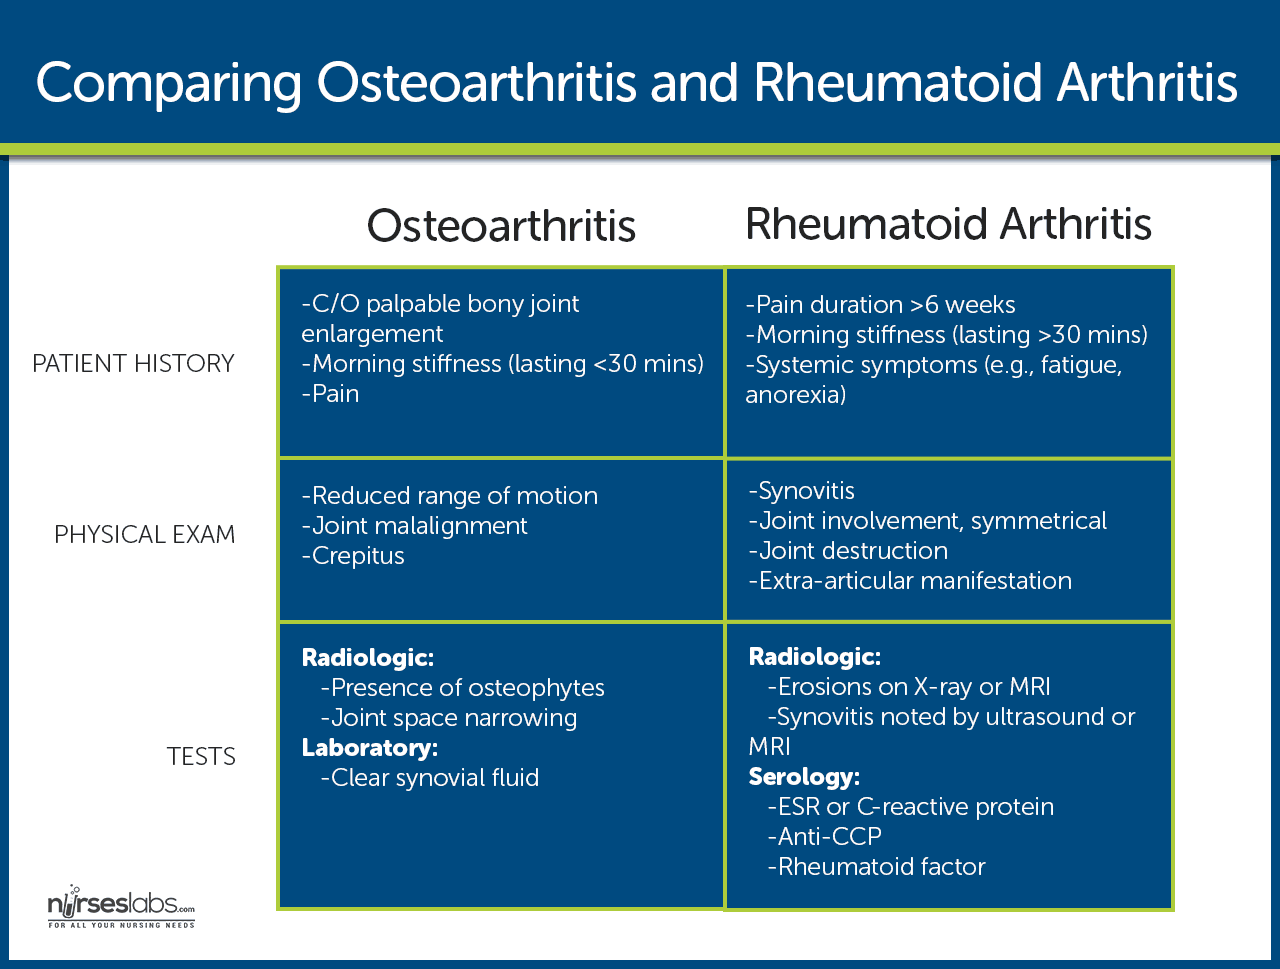 Comparing Osteoarthritis and Rheumatoid Arthritis